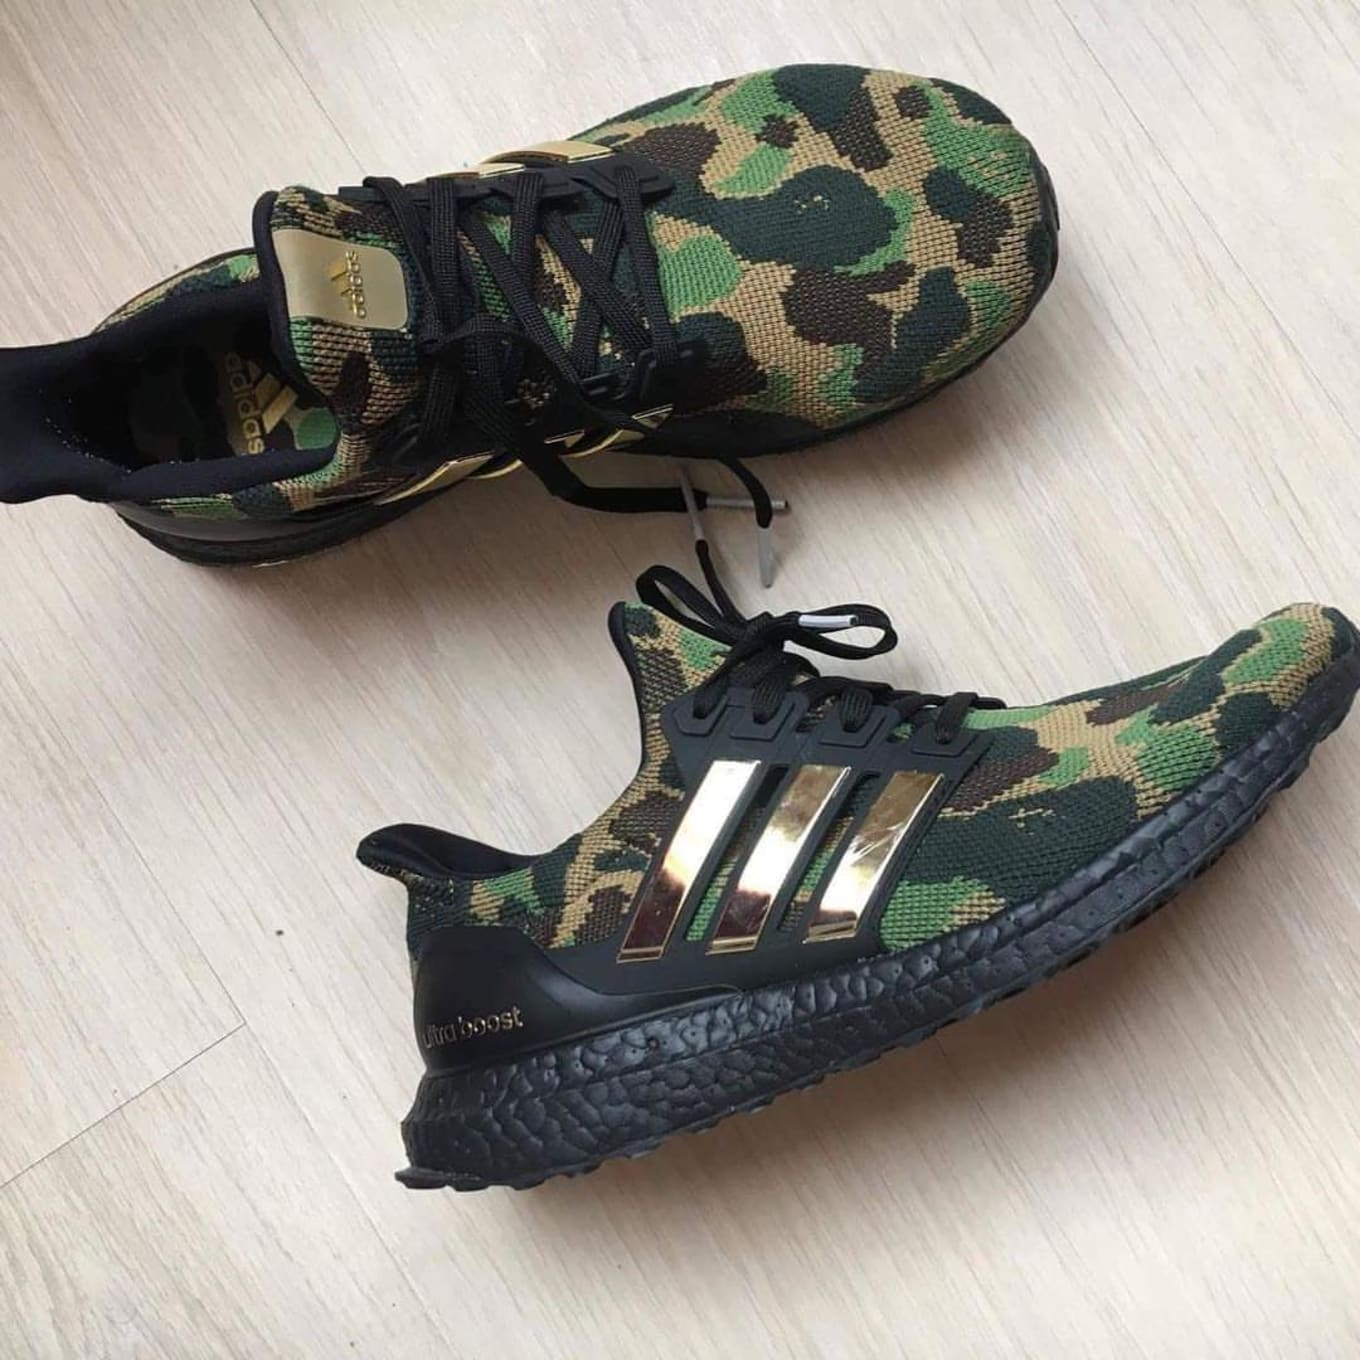 d3c31cd5a Bape x Adidas Ultra Boost Collaboration Release Date